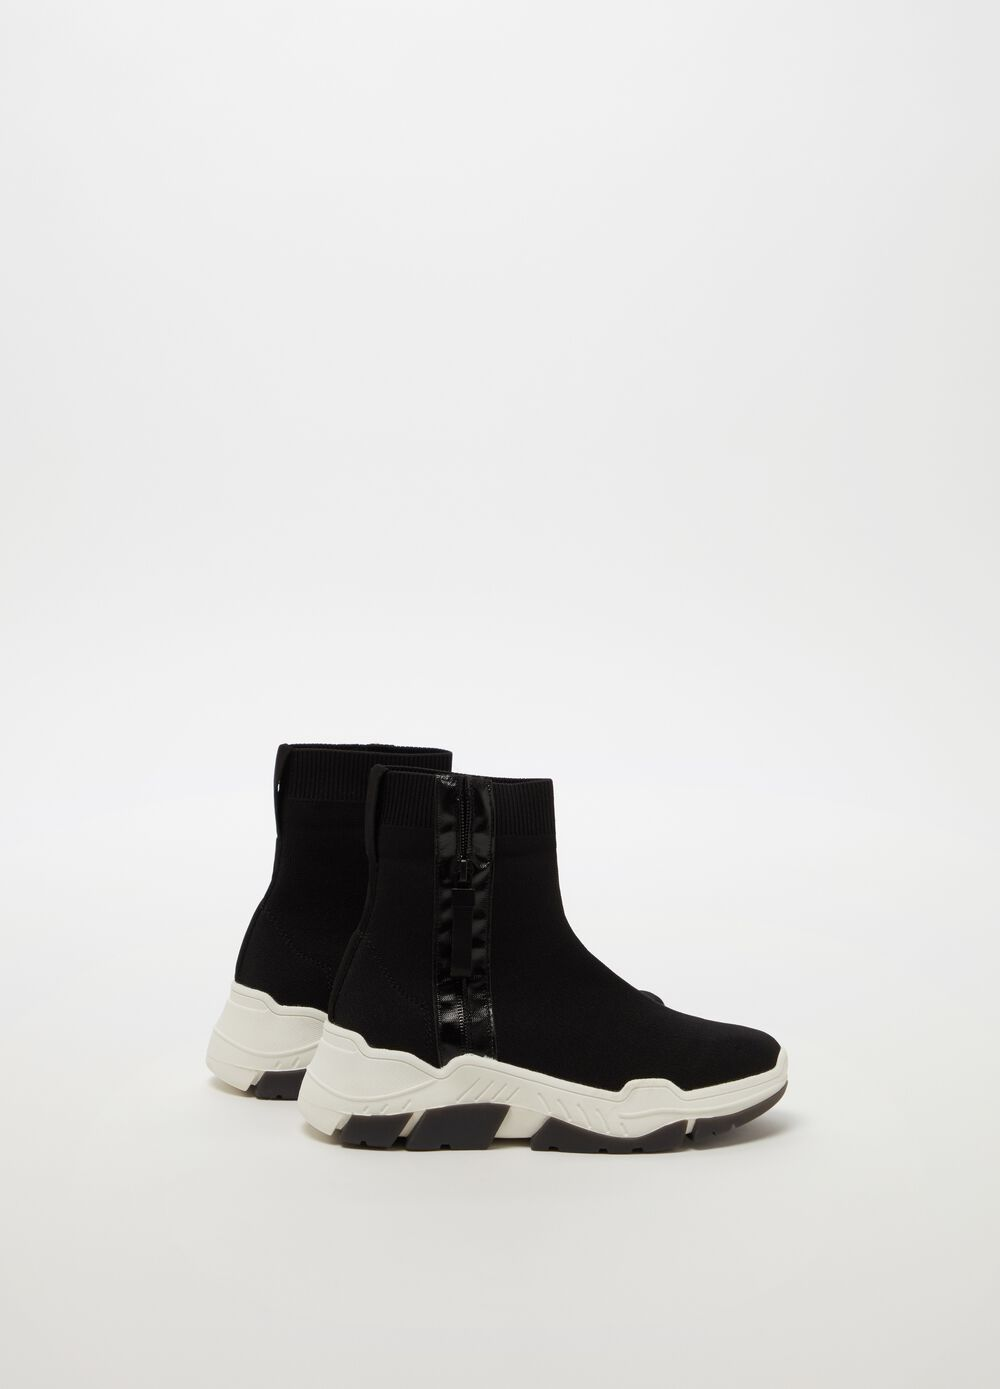 High-top sock sneakers with thick sole and zip